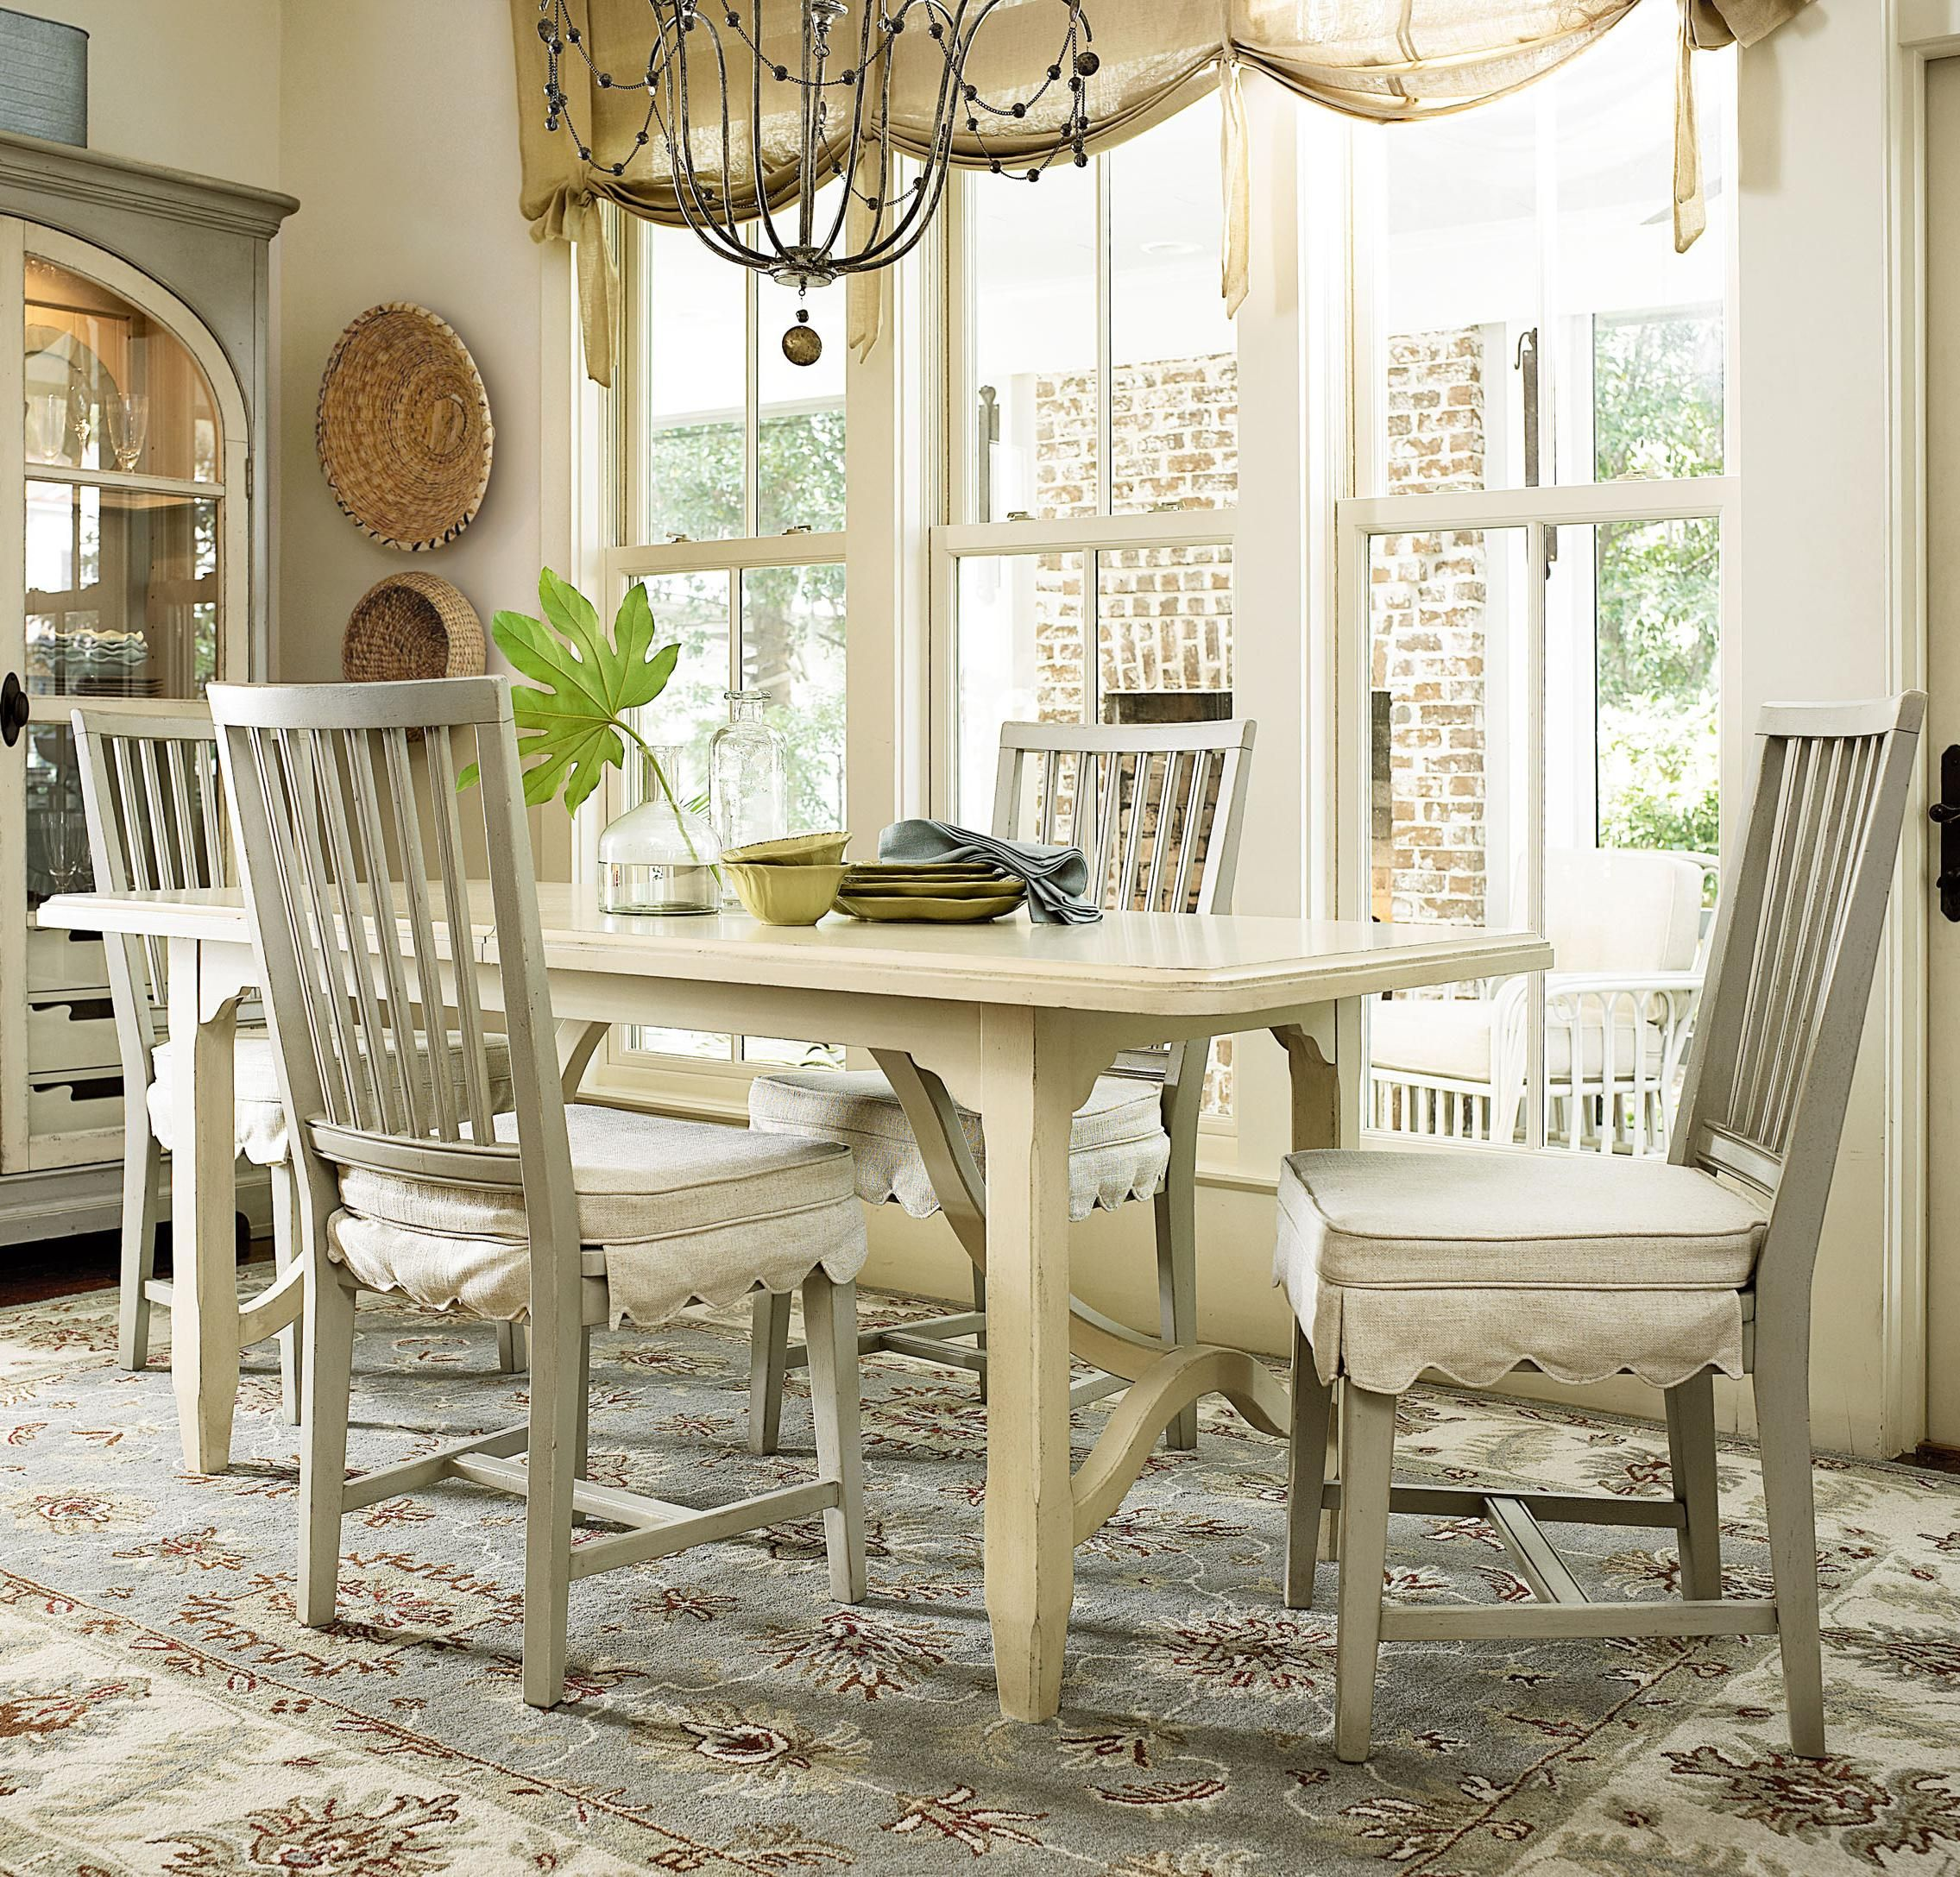 17 Best images about Delicious Dining Rooms on Pinterest